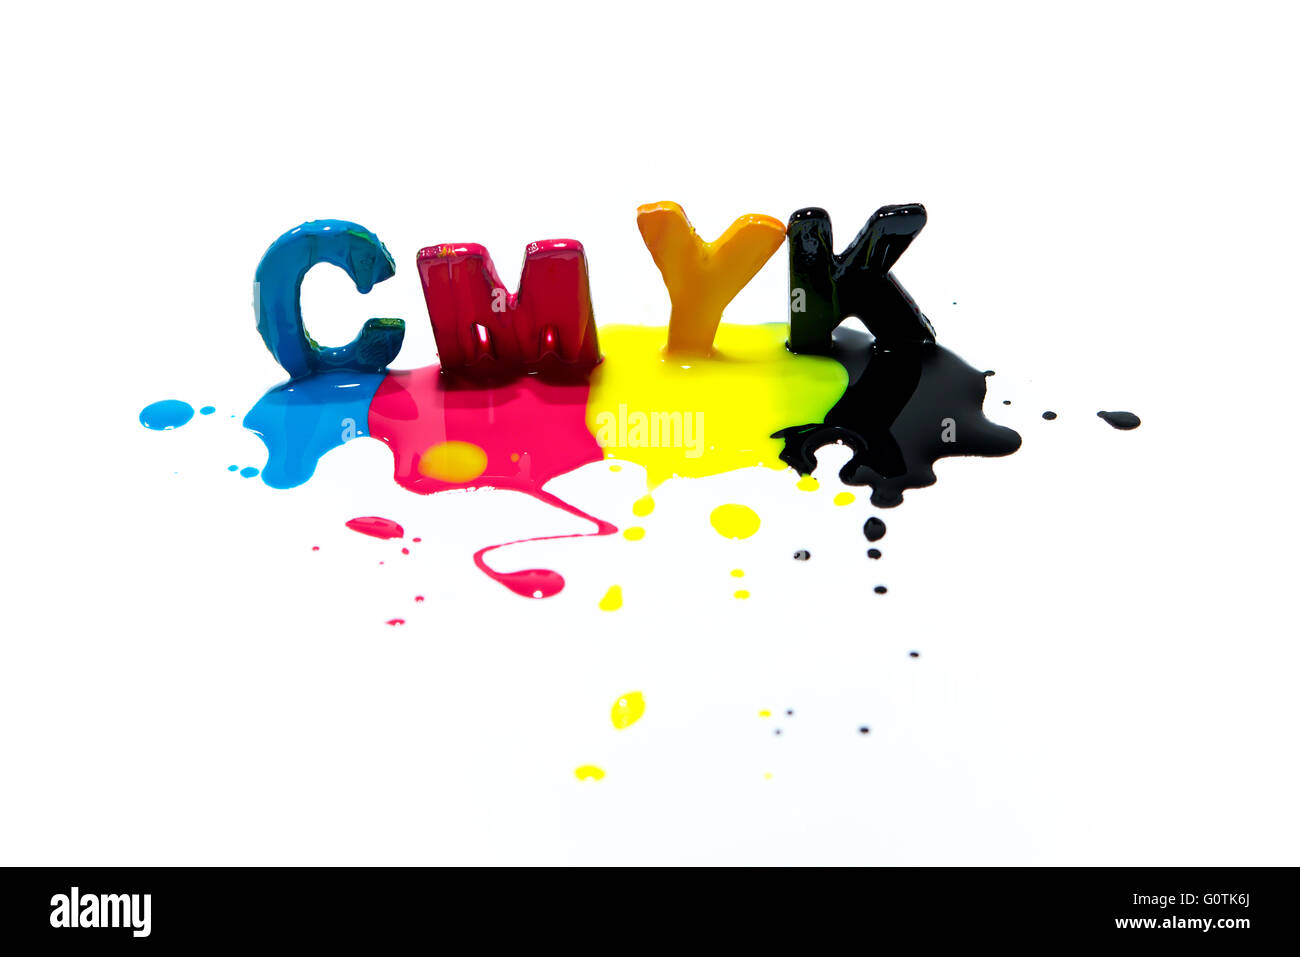 multi-colored CMYK capital letters - Stock Image